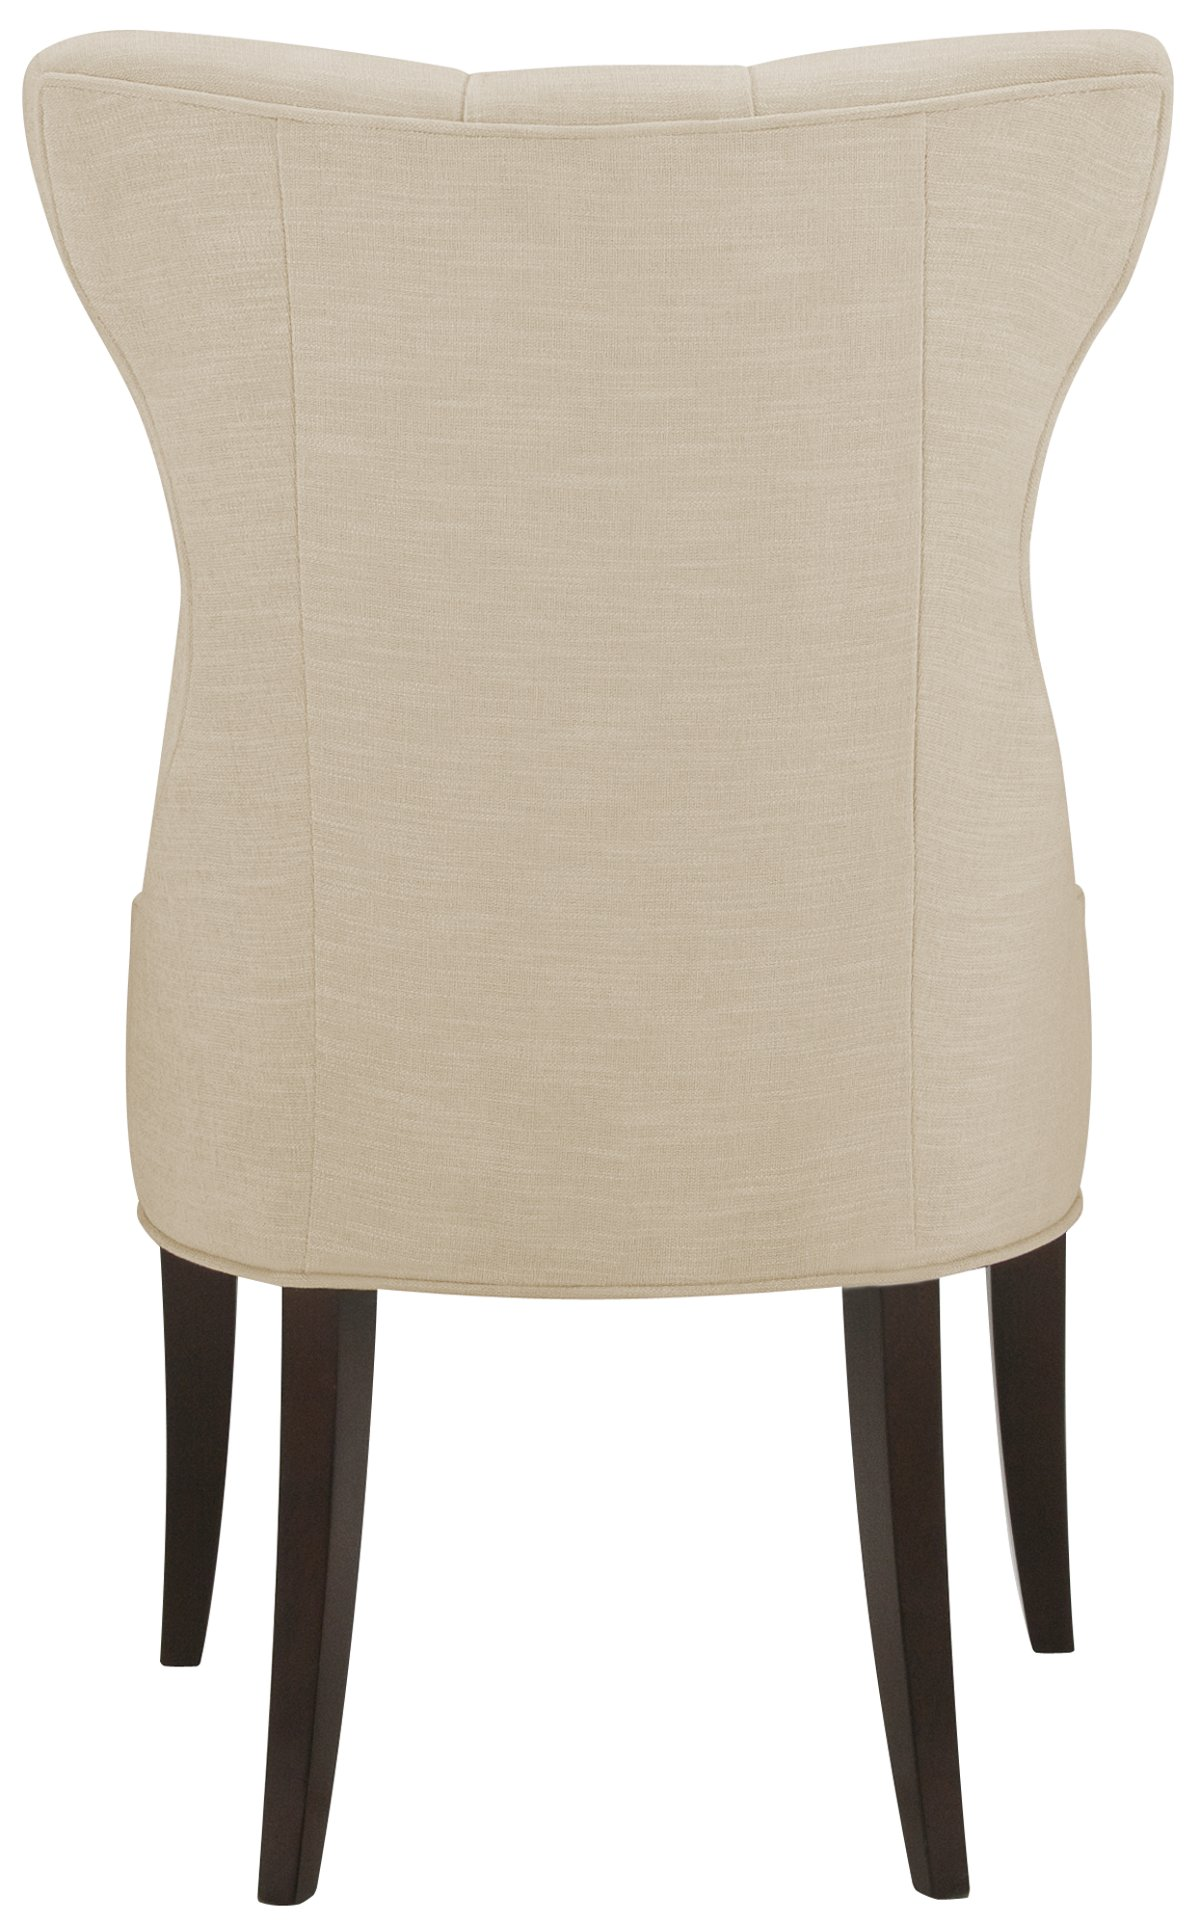 Deco Light Beige Upholstered Side Chair